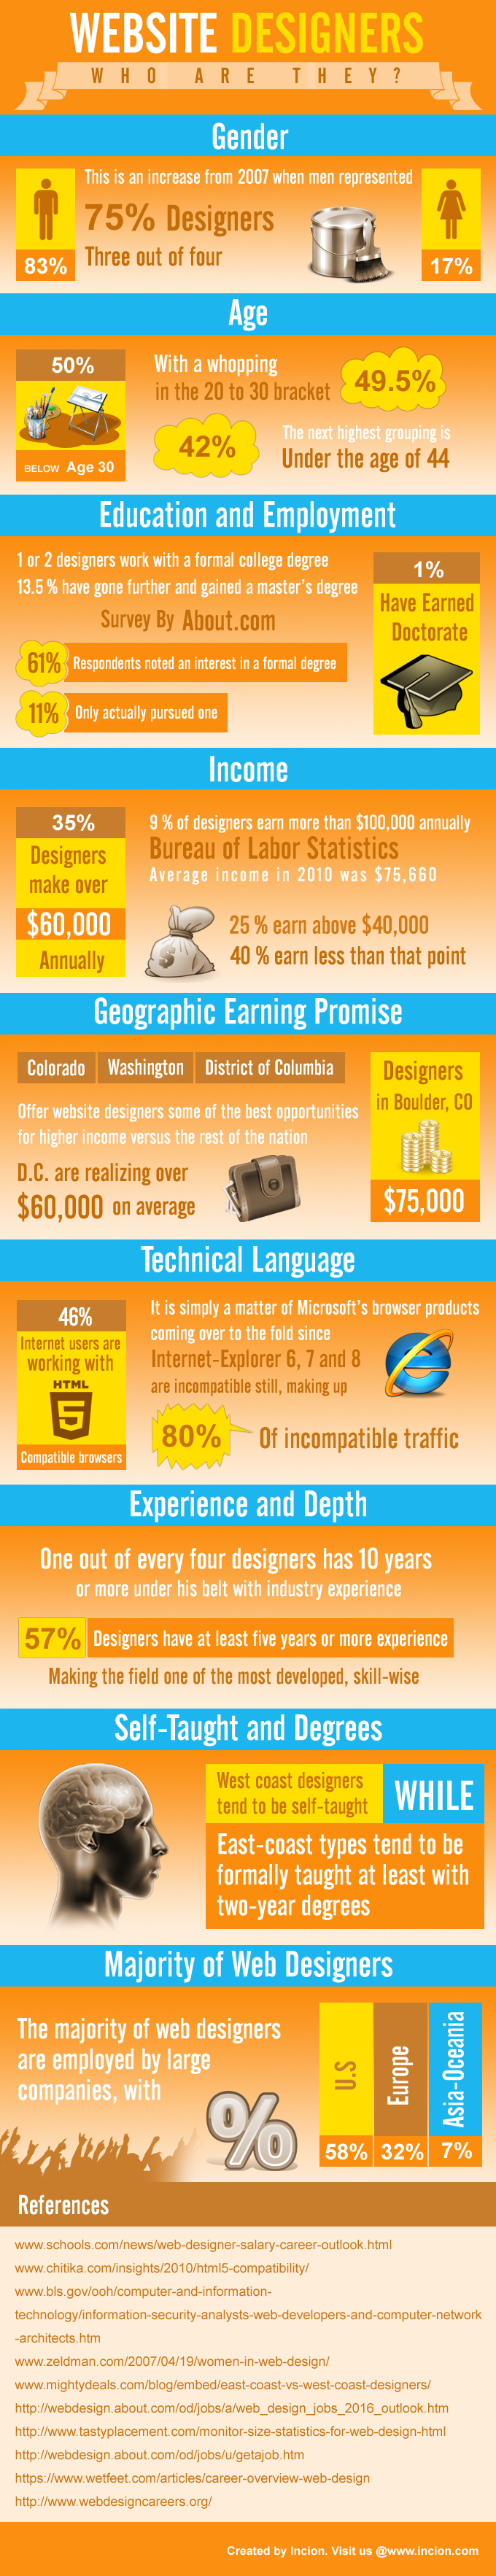 Demographics-of-Website-Designers